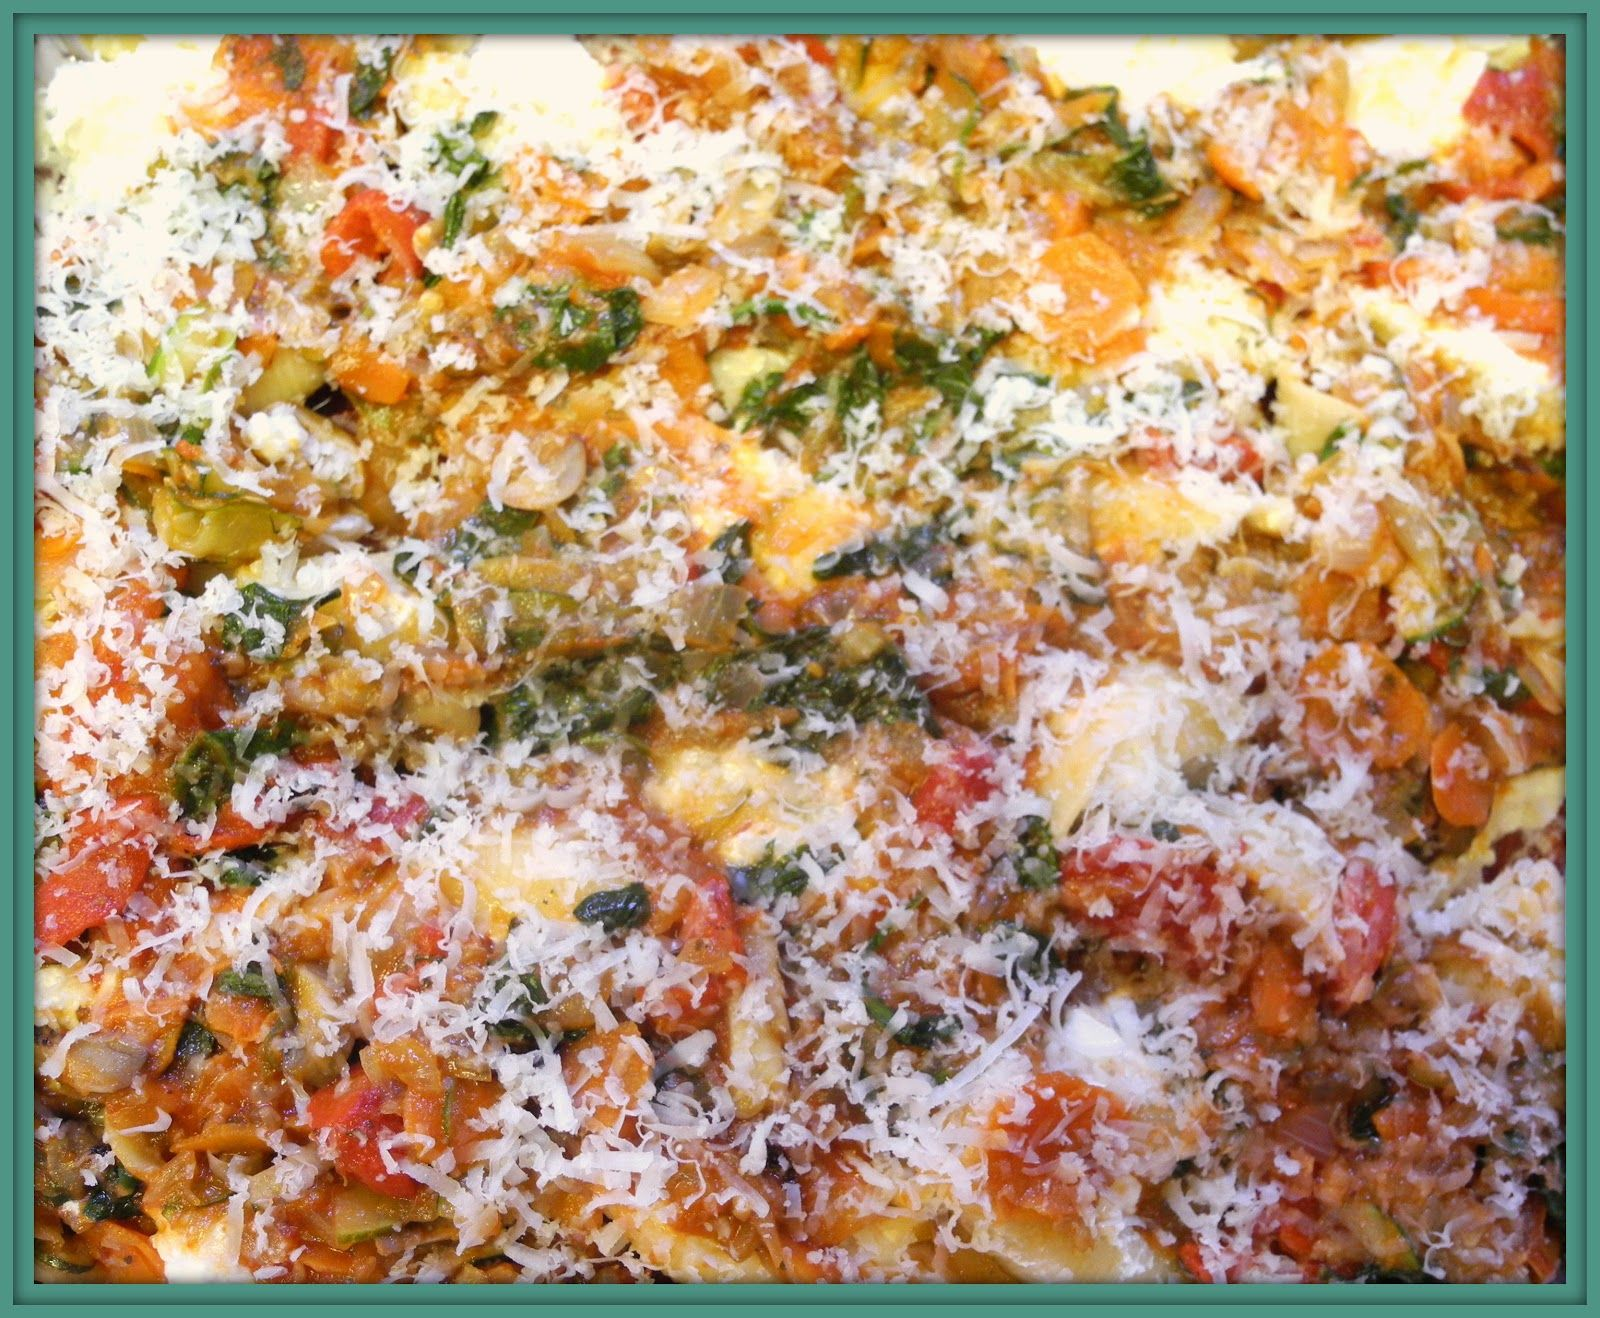 BIZZY BAKES: Stuffed Shells With Vegetable Bolognese Sauce